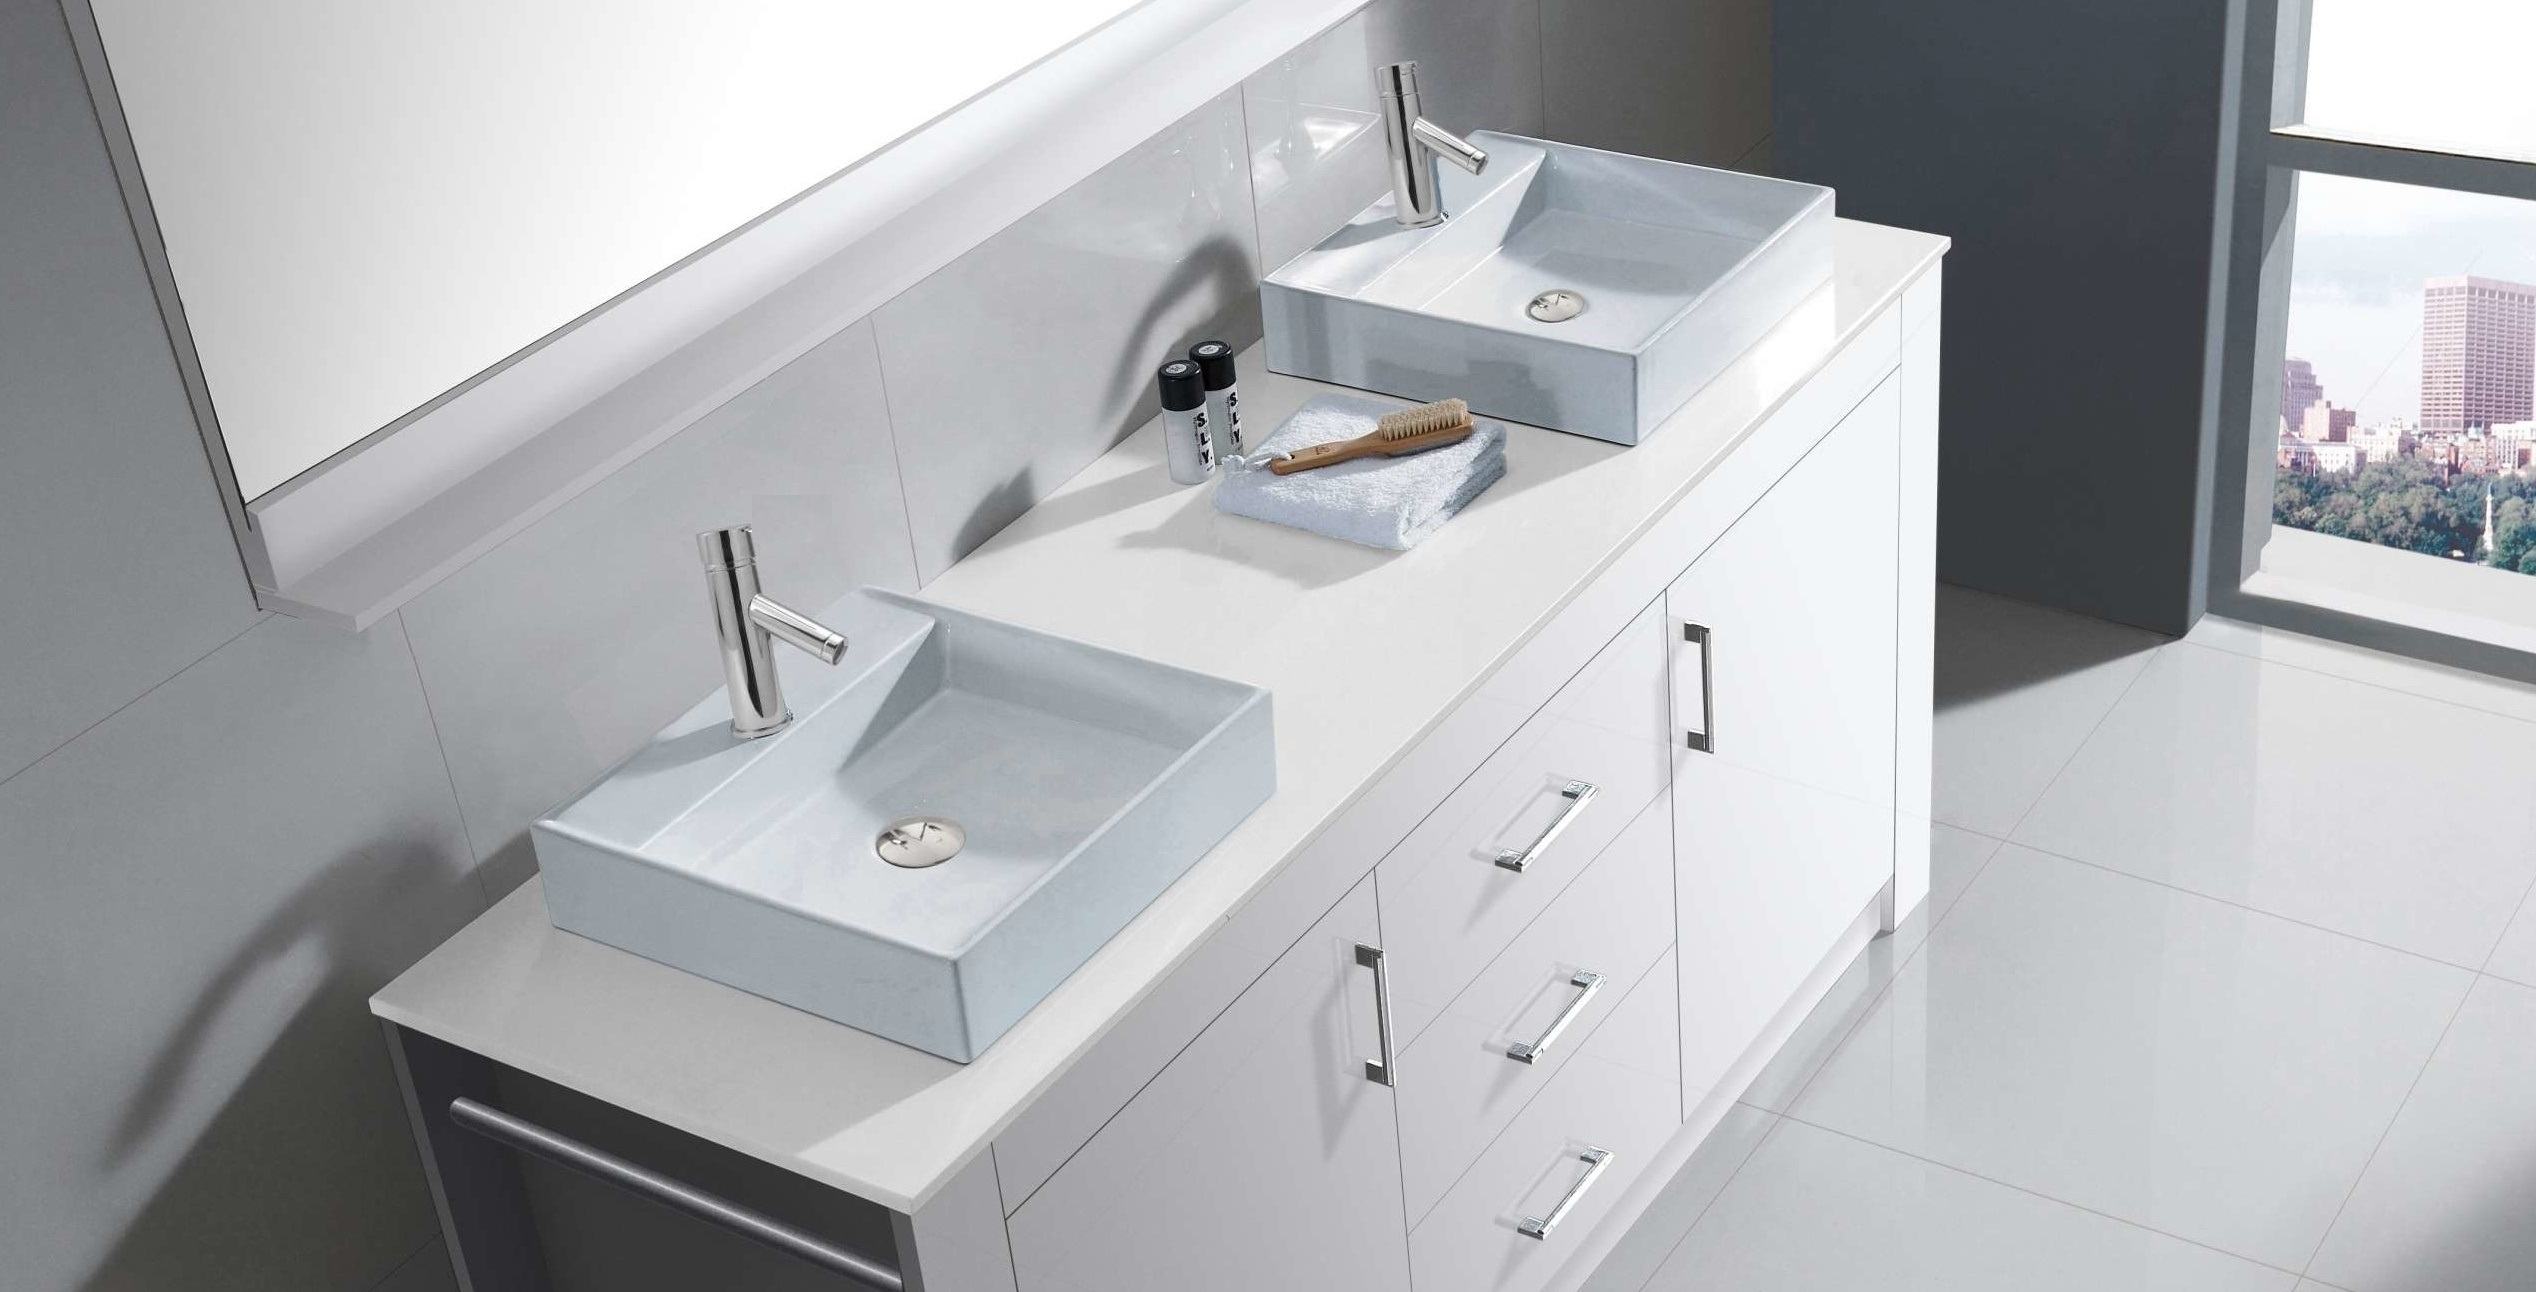 Ideas, motion sensor faucets hands free faucets automatic faucets within dimensions 2536 x 1292  .